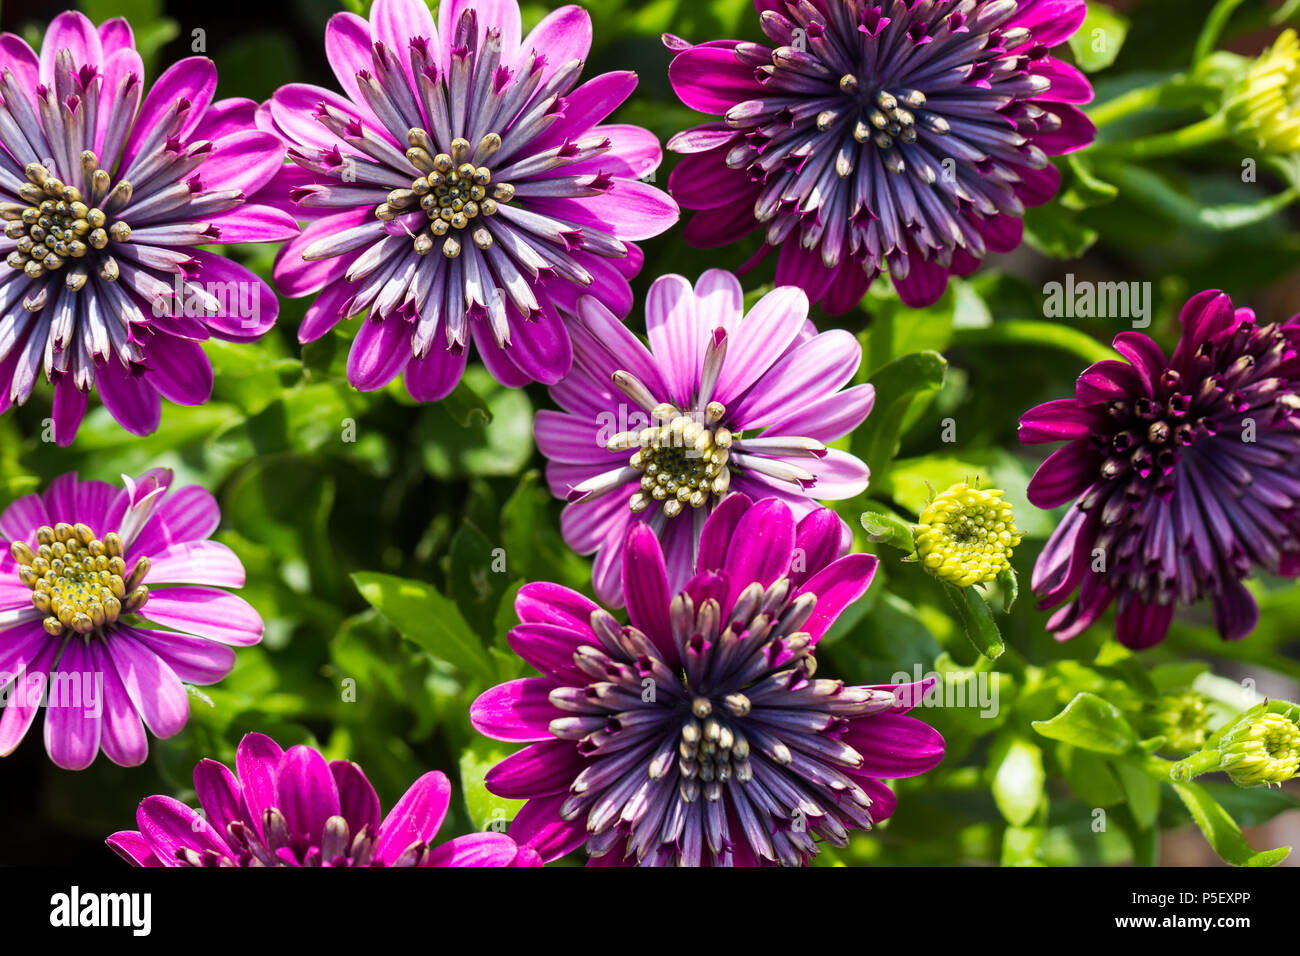 Double African Daisy Flowers Osteospermum Blooming In Summertime